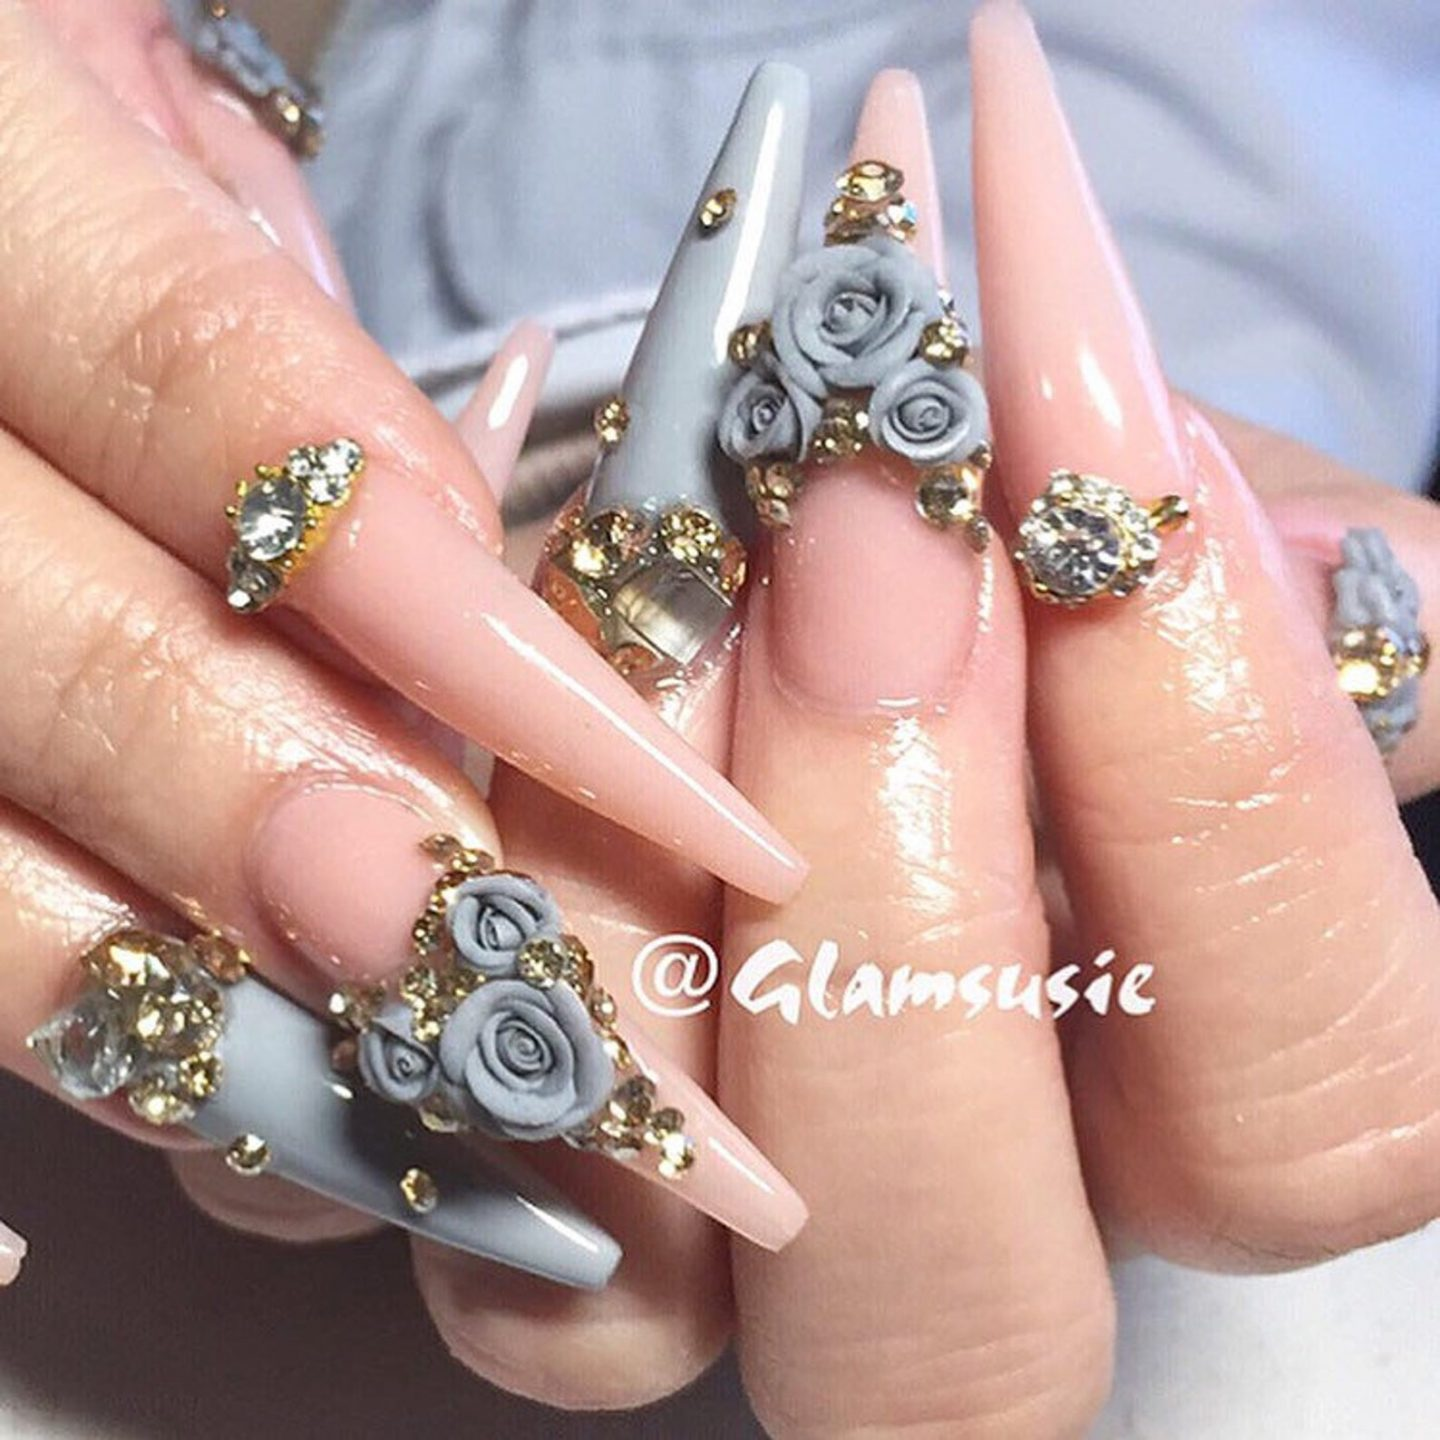 Light grey and pink stiletto nails with roses and rhinestones